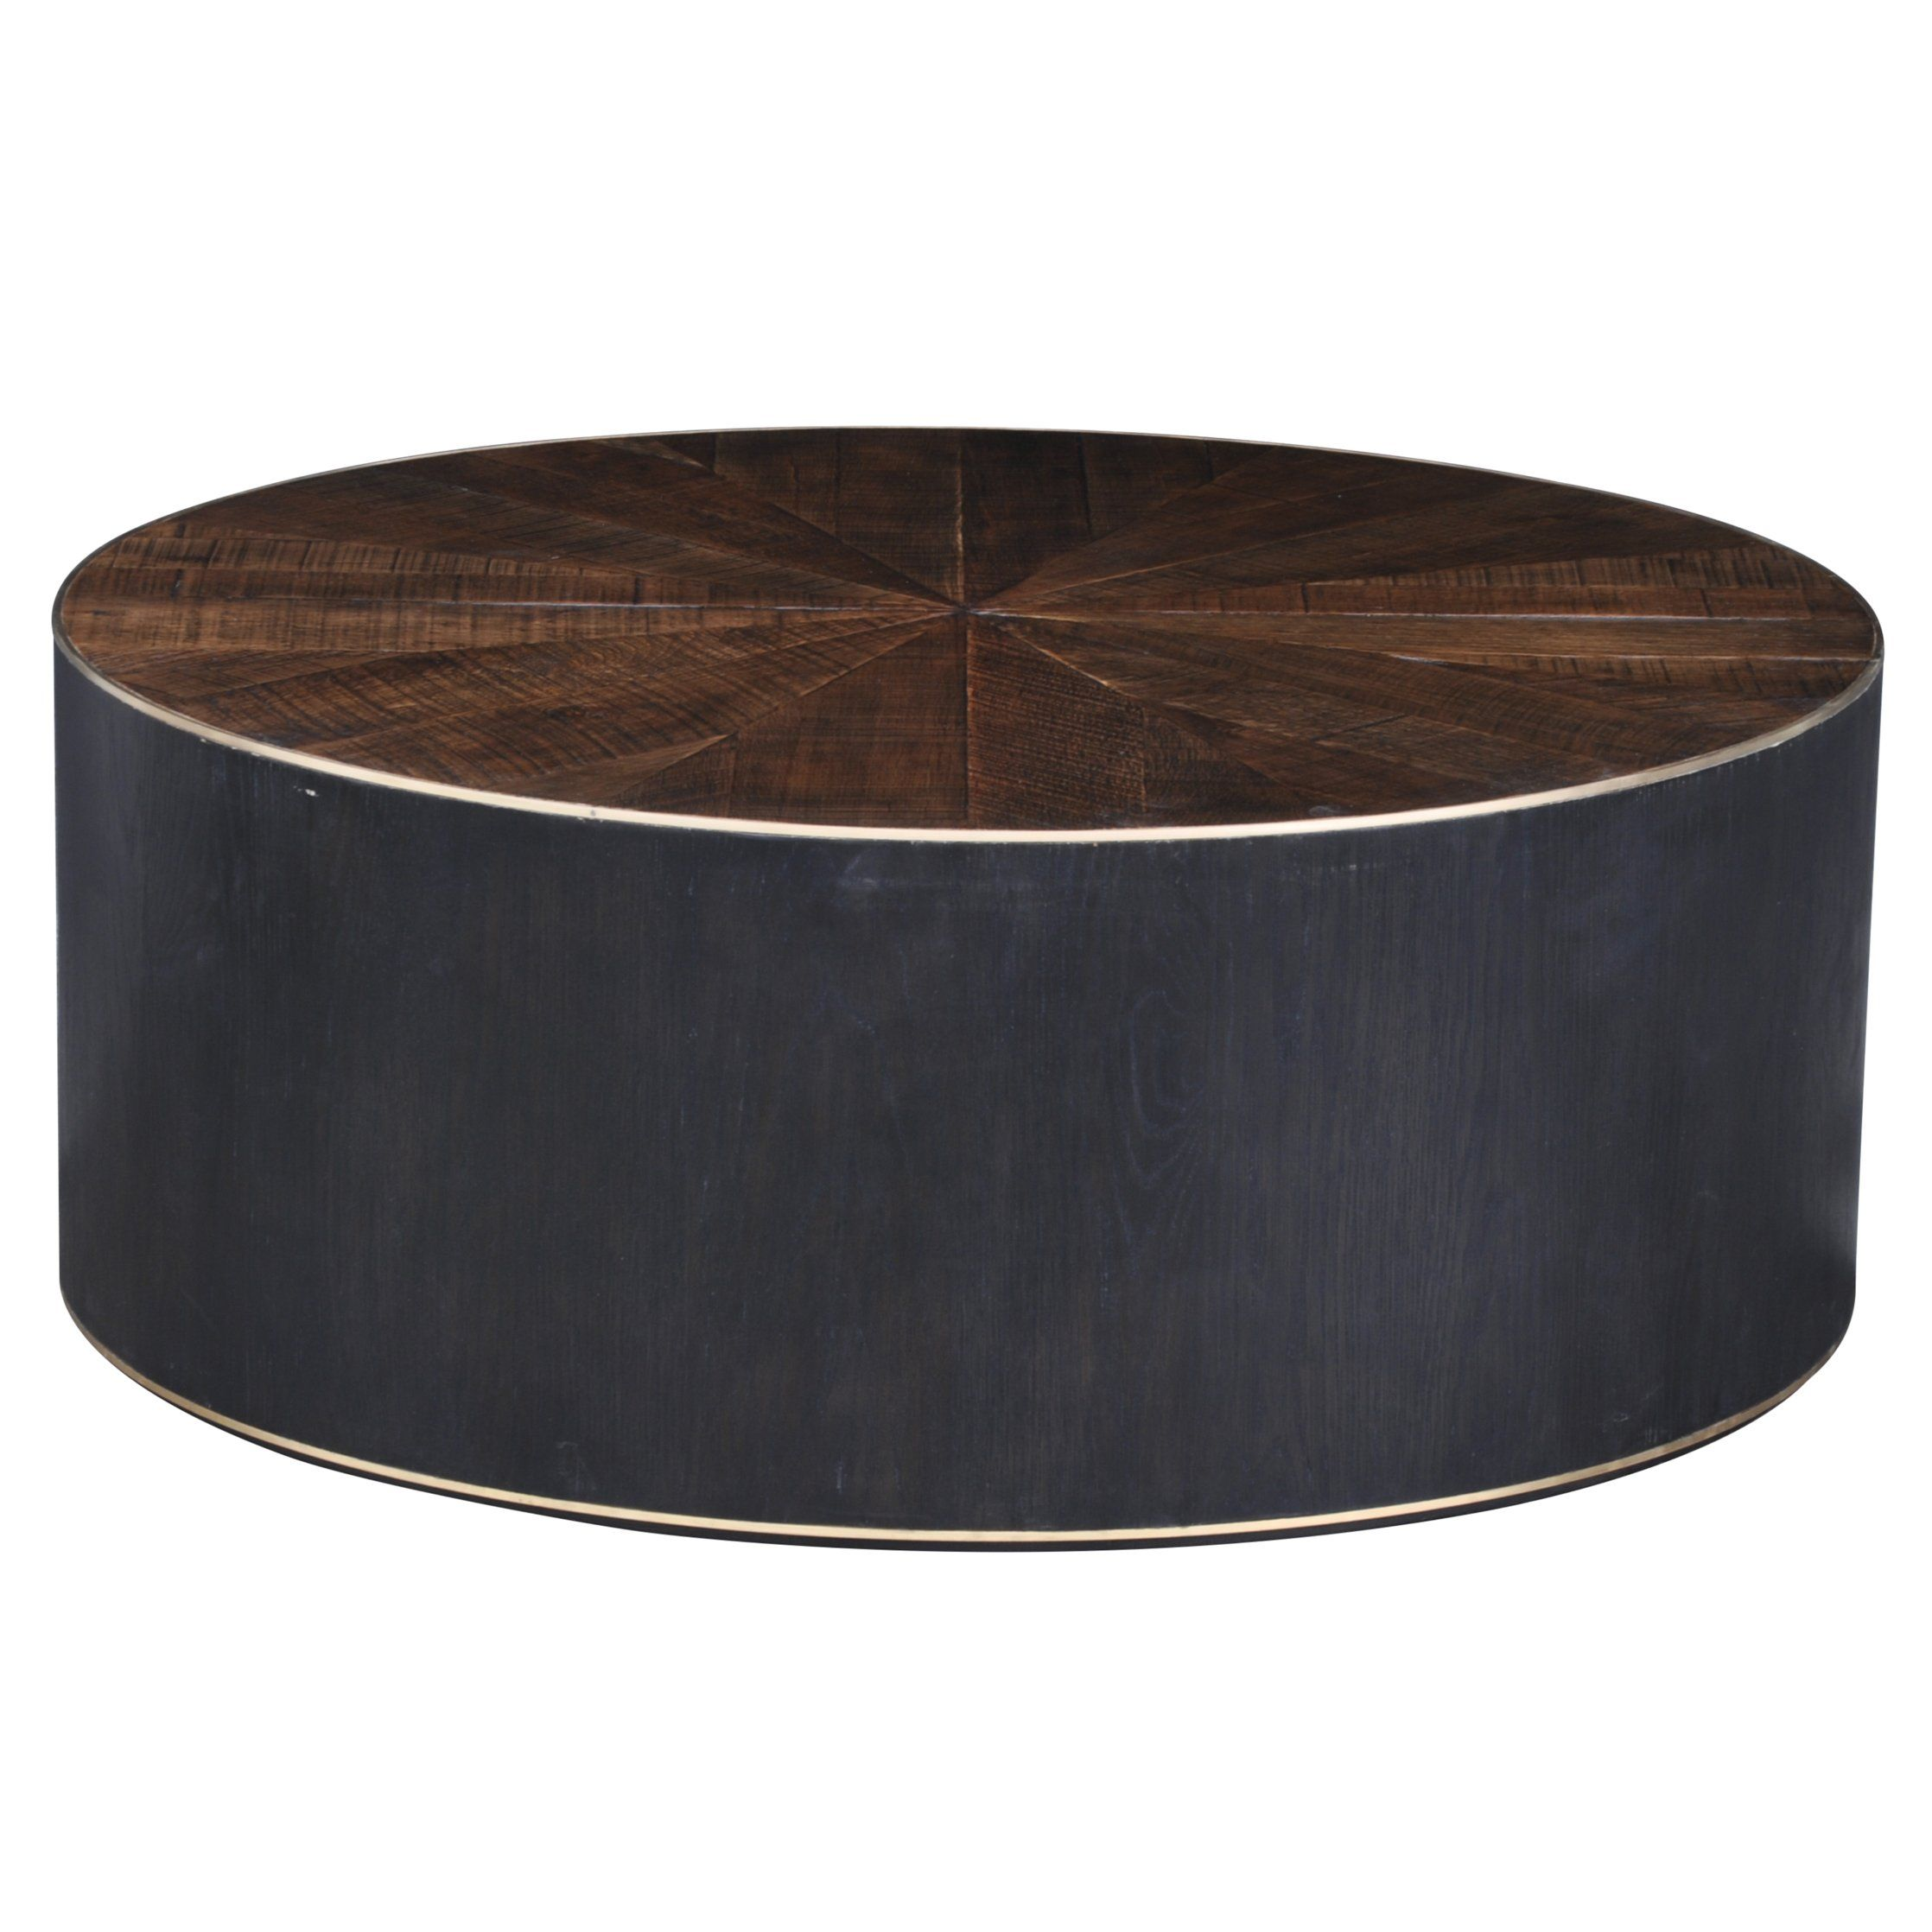 Perry Coffee Table Coffee Table Mid Century Modern Coffee Table Coffee Table Wood [ 2236 x 2236 Pixel ]